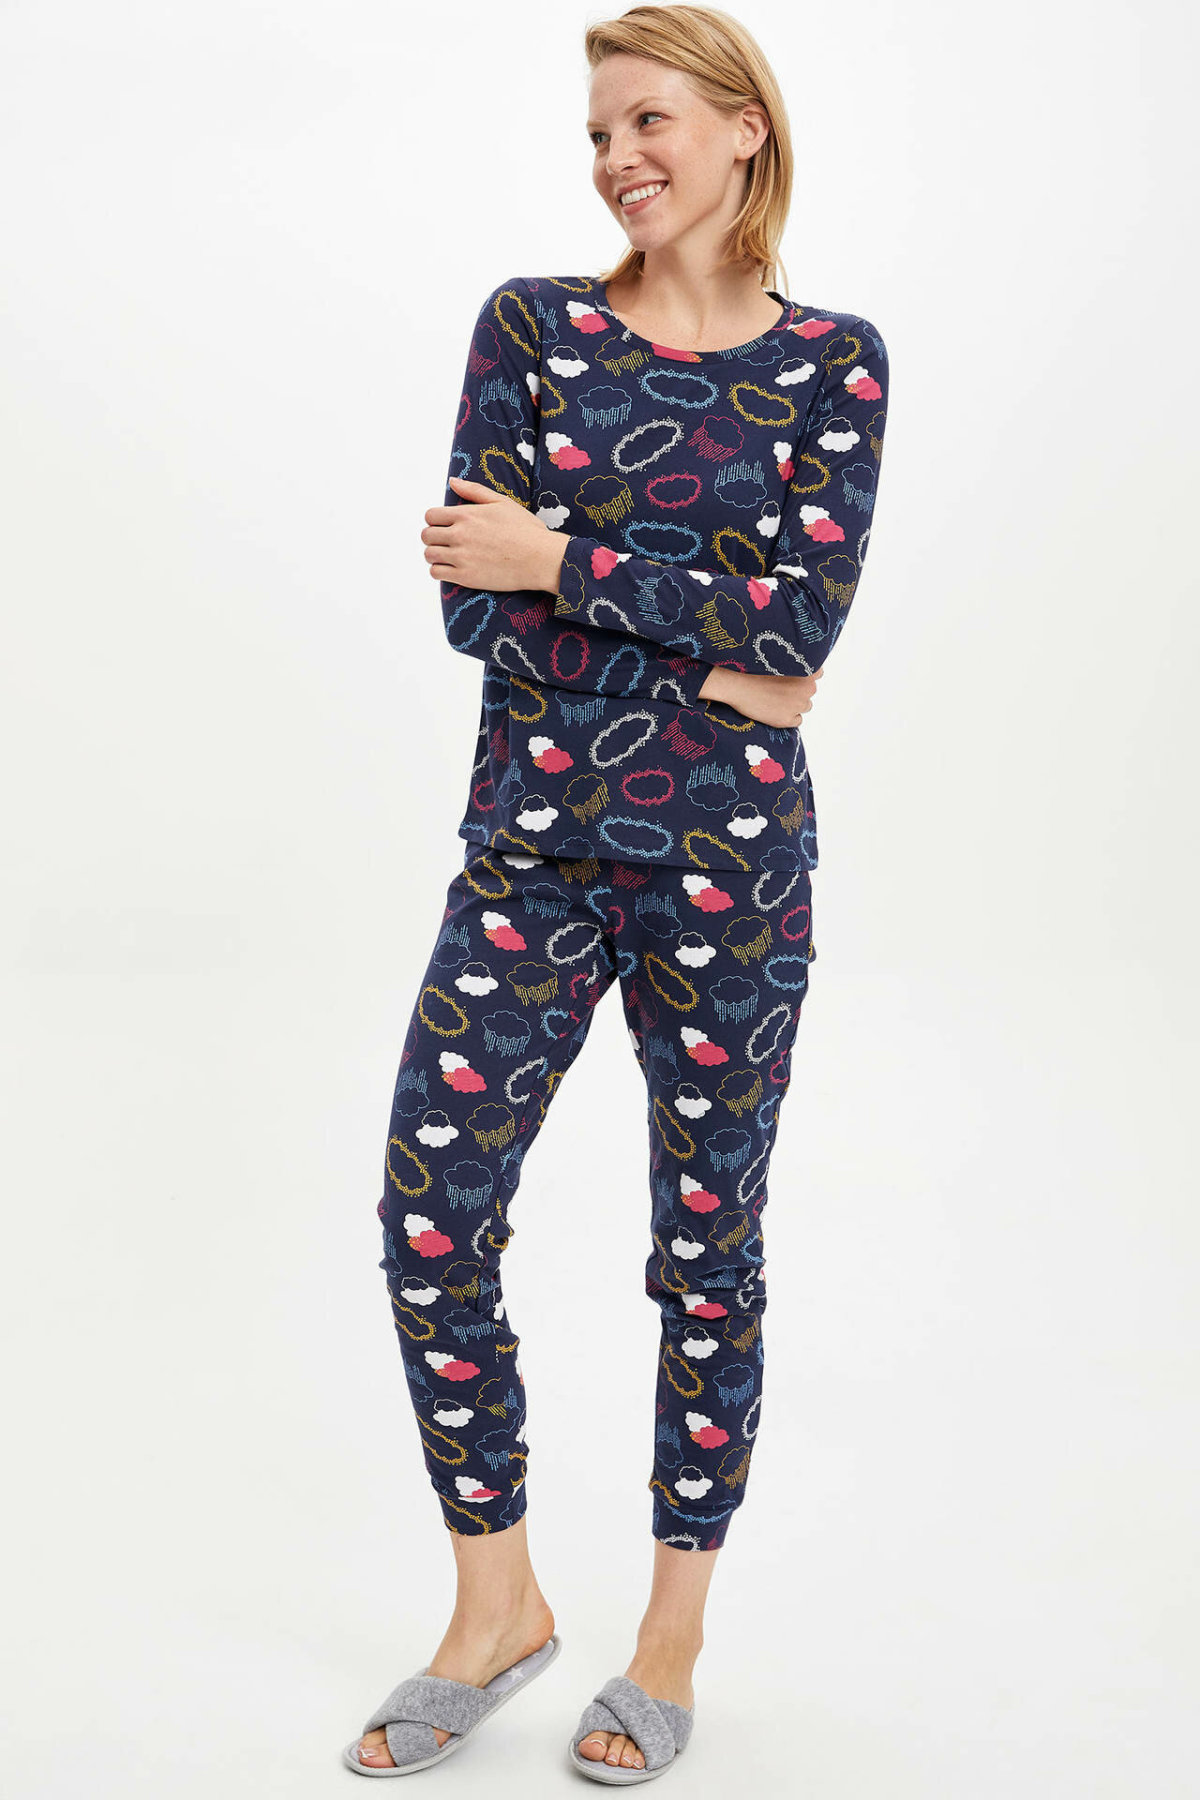 DeFacto Woman Winter Homewear Sets Women Casual Comfort Colorful Cloud Prints Knitted Pajamas Sets-M1908AZ19WN